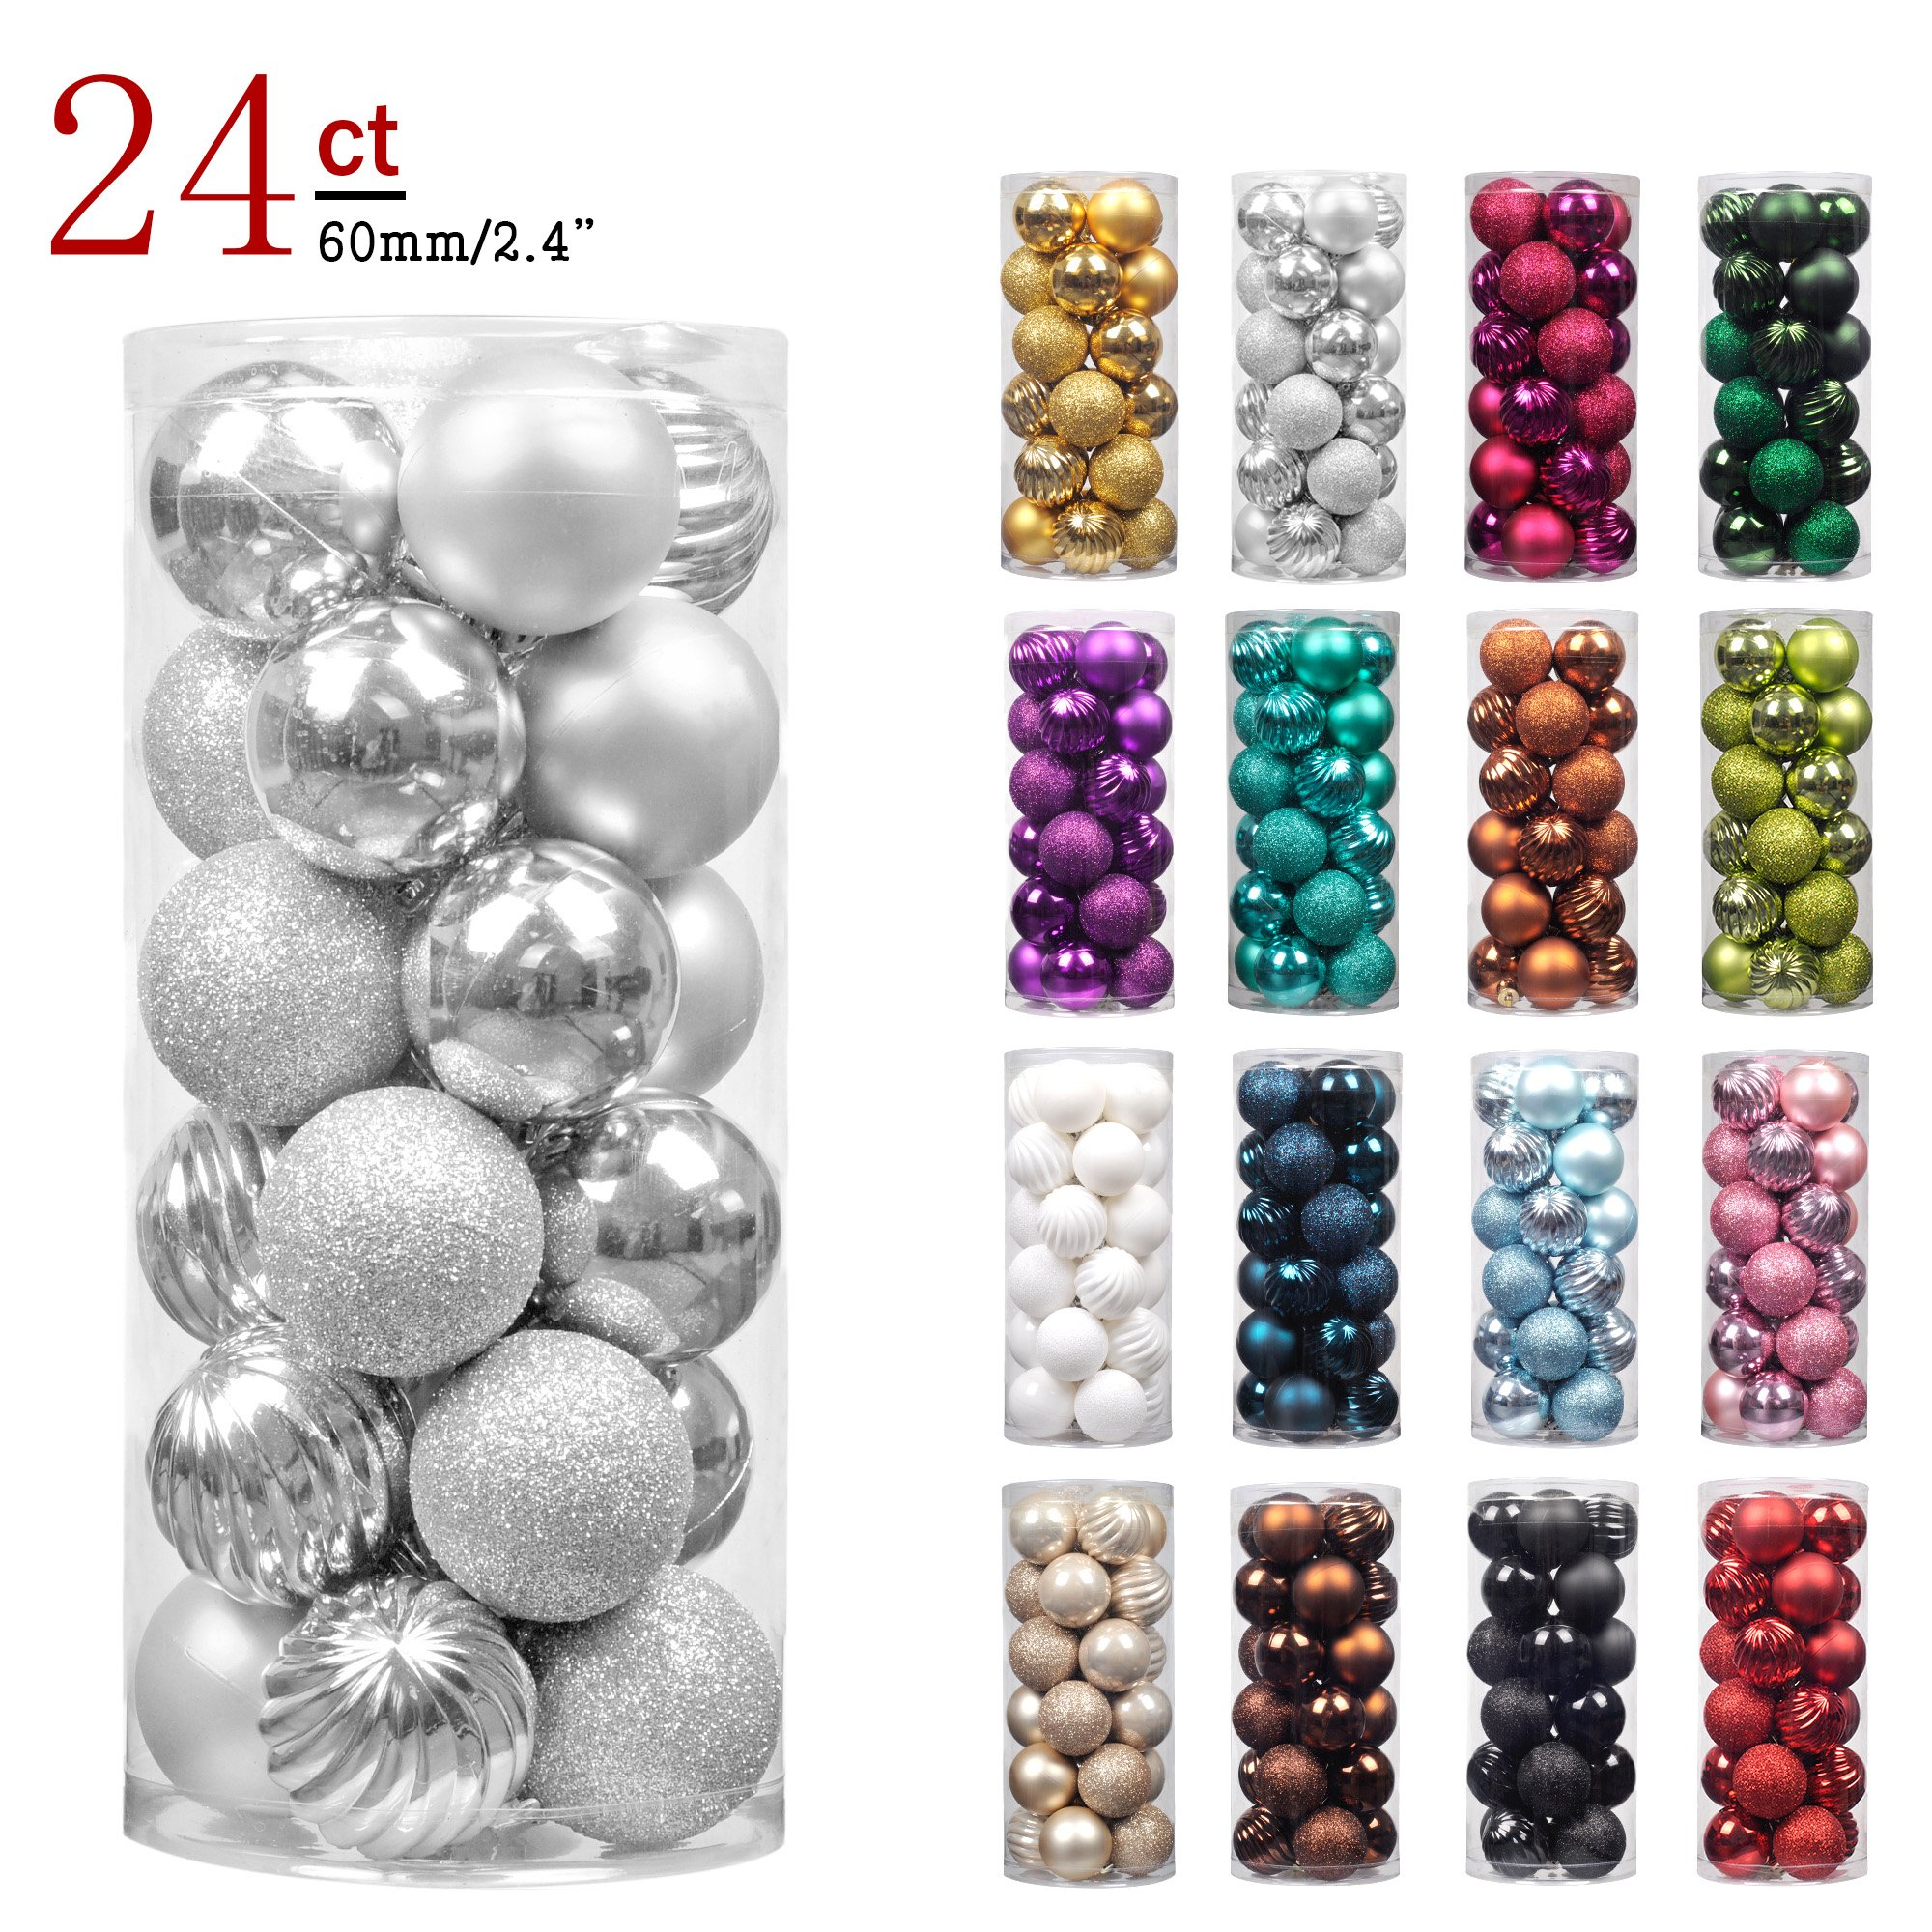 KI Store 24ct Christmas Ball Ornaments Shatterproof Christmas Decorations Tree Balls for Holiday Wedding Party Decoration, Tree Ornaments Hooks included 2.36'' (60mm Silver)